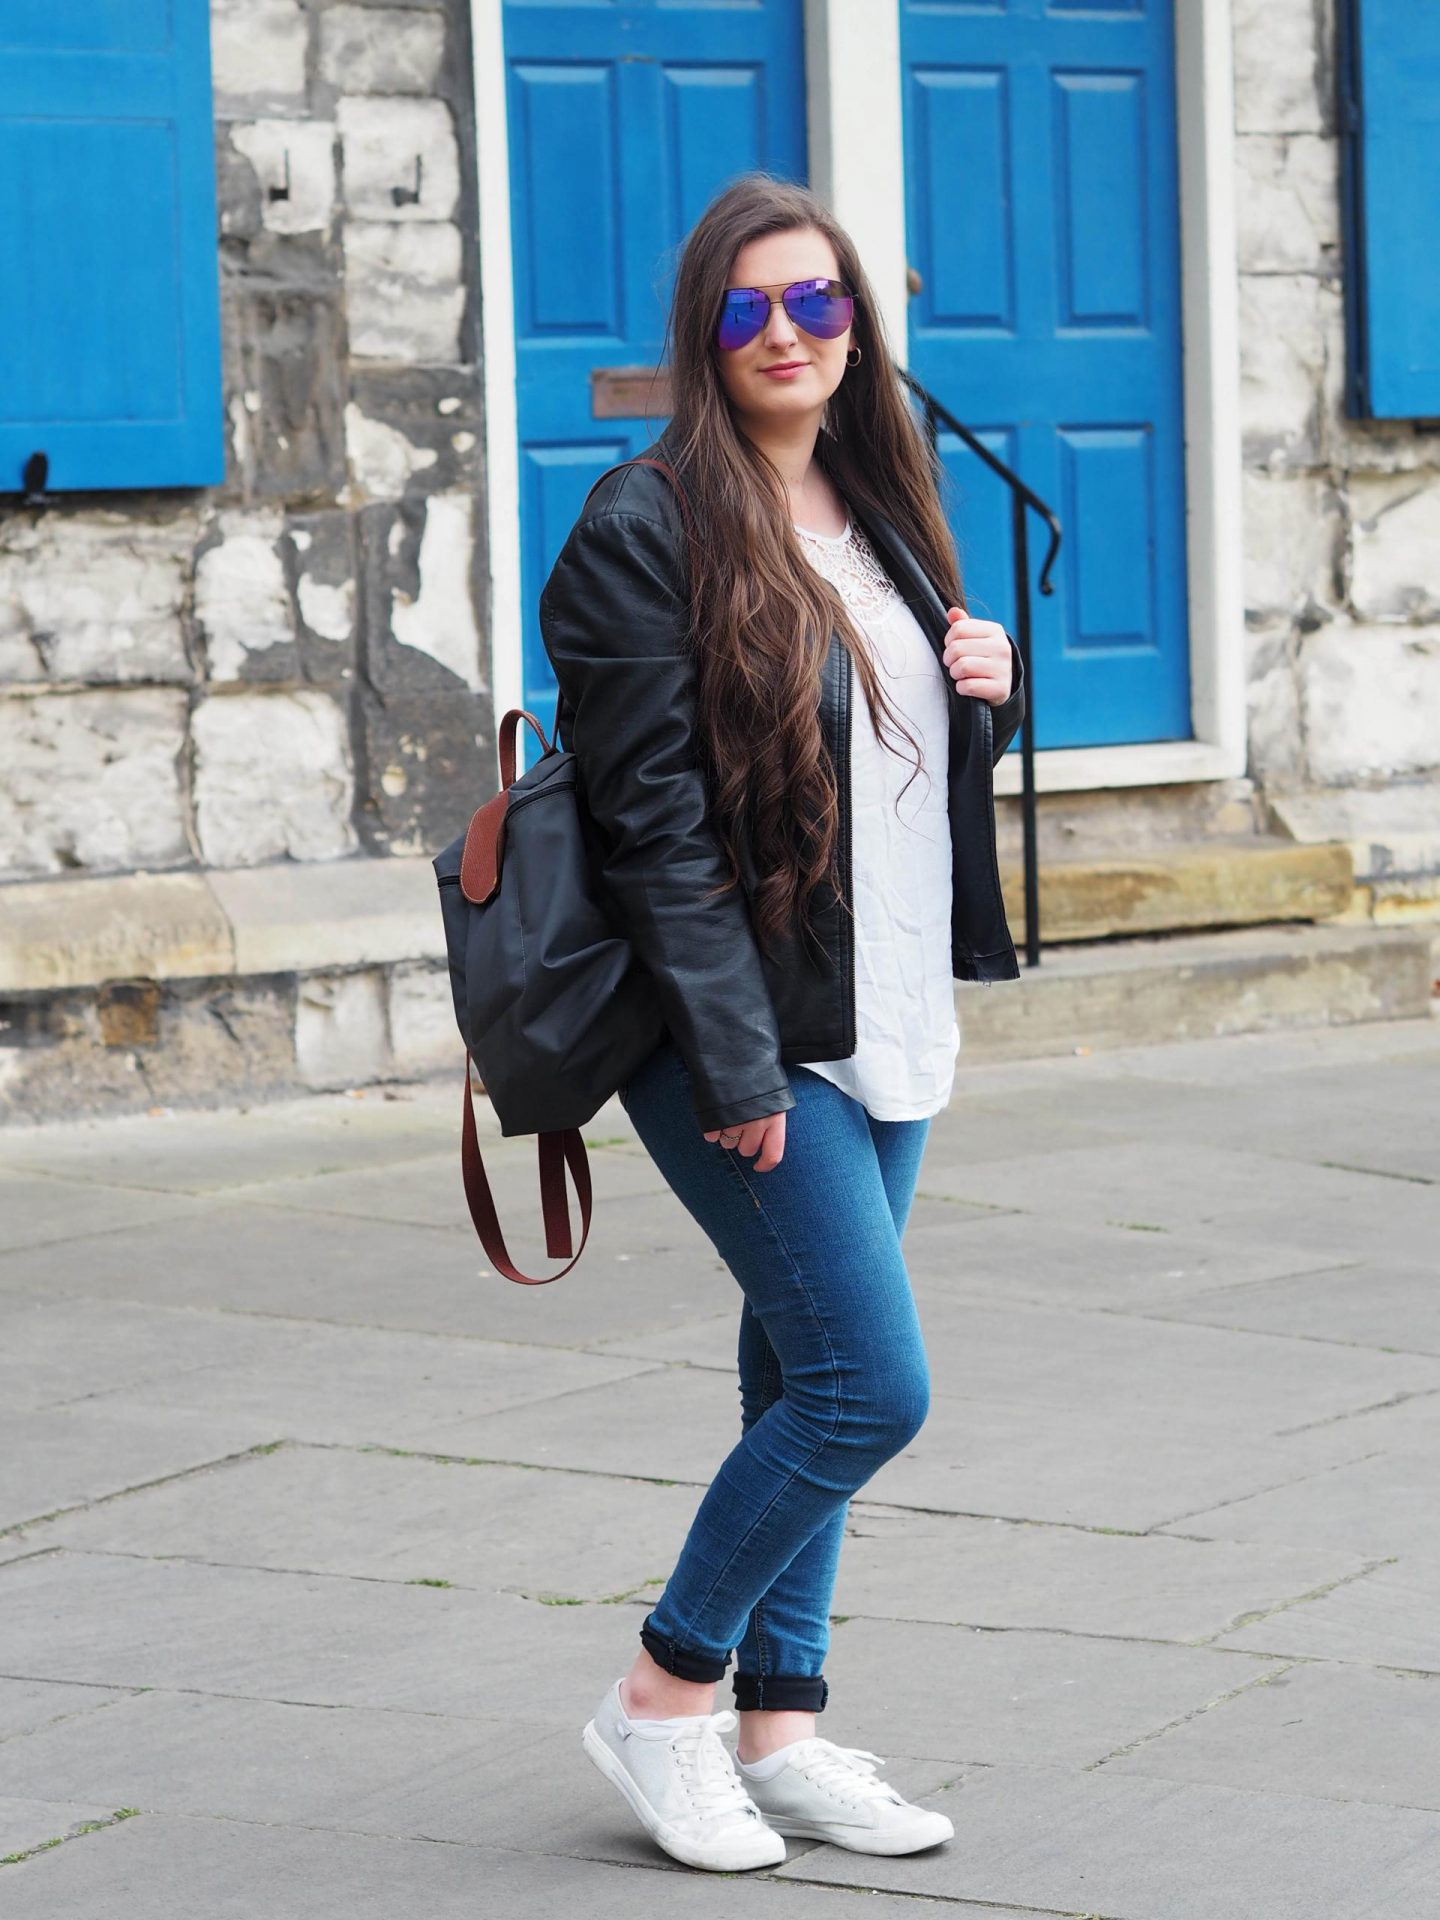 Casual Spring Look ft. Rocket Dog & Smart Buy Glasses - Rachel Nicole UK Blogger